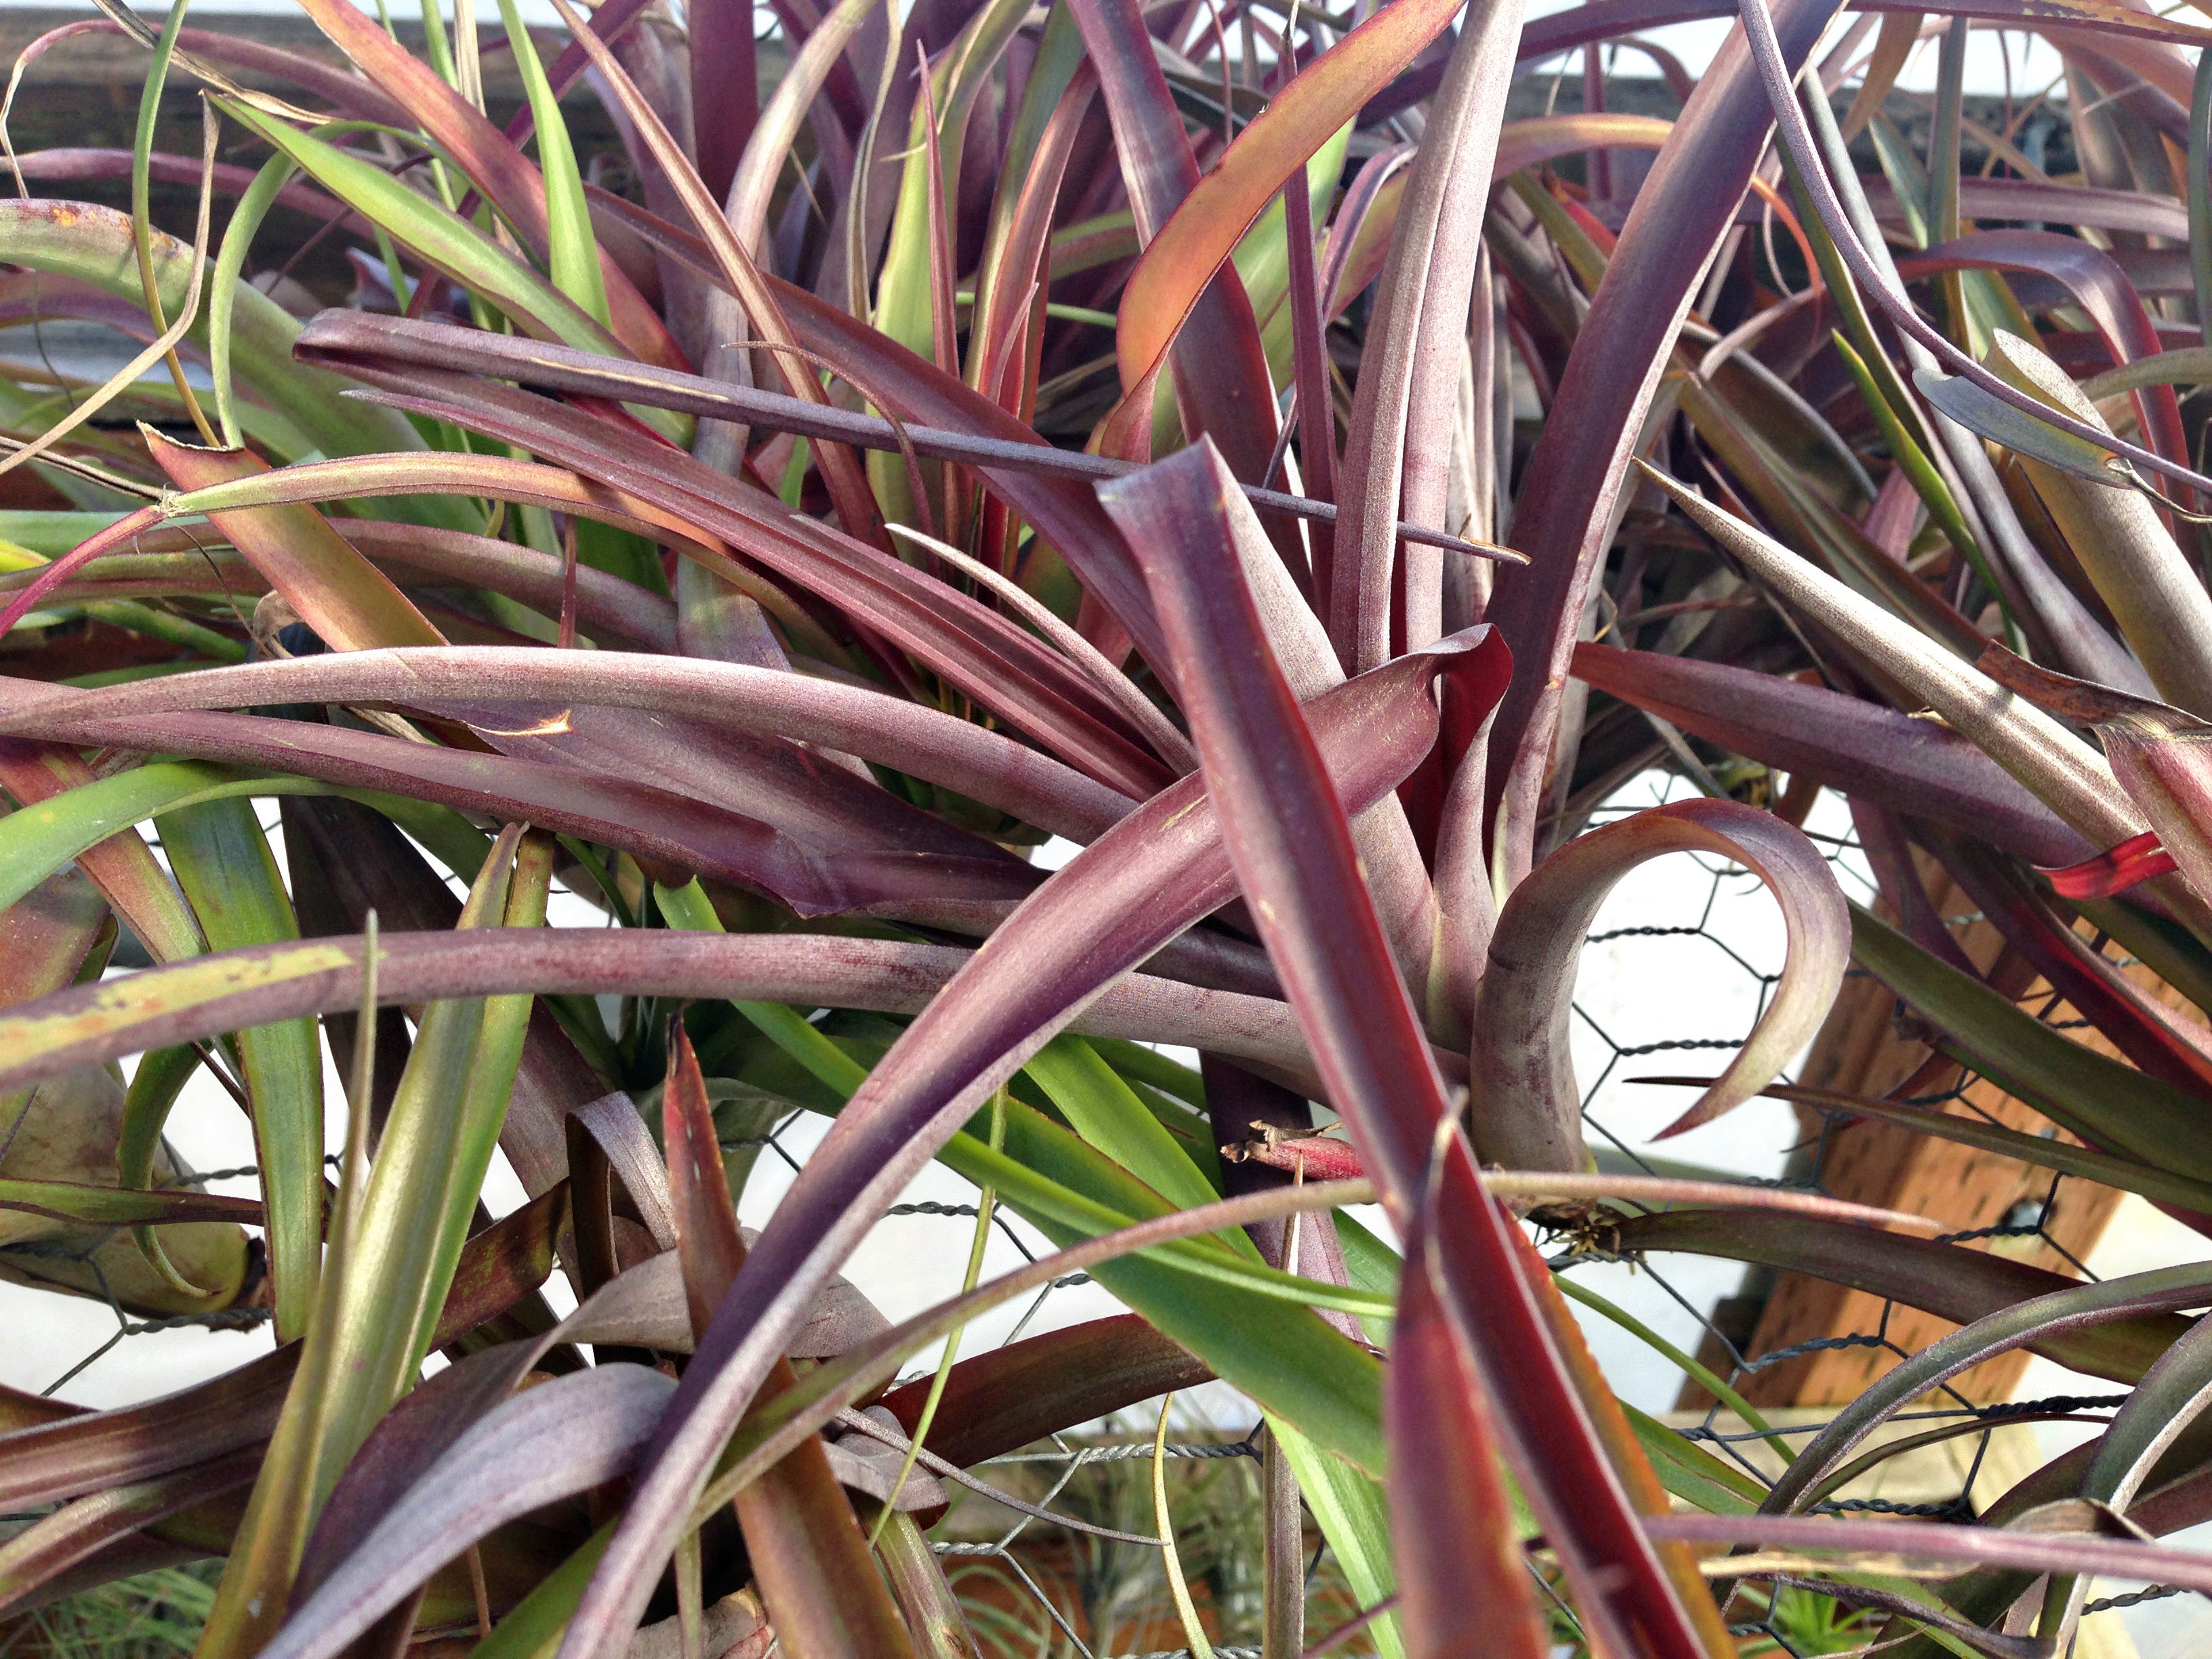 Flabellata air plant with purplish-brown and green leaves